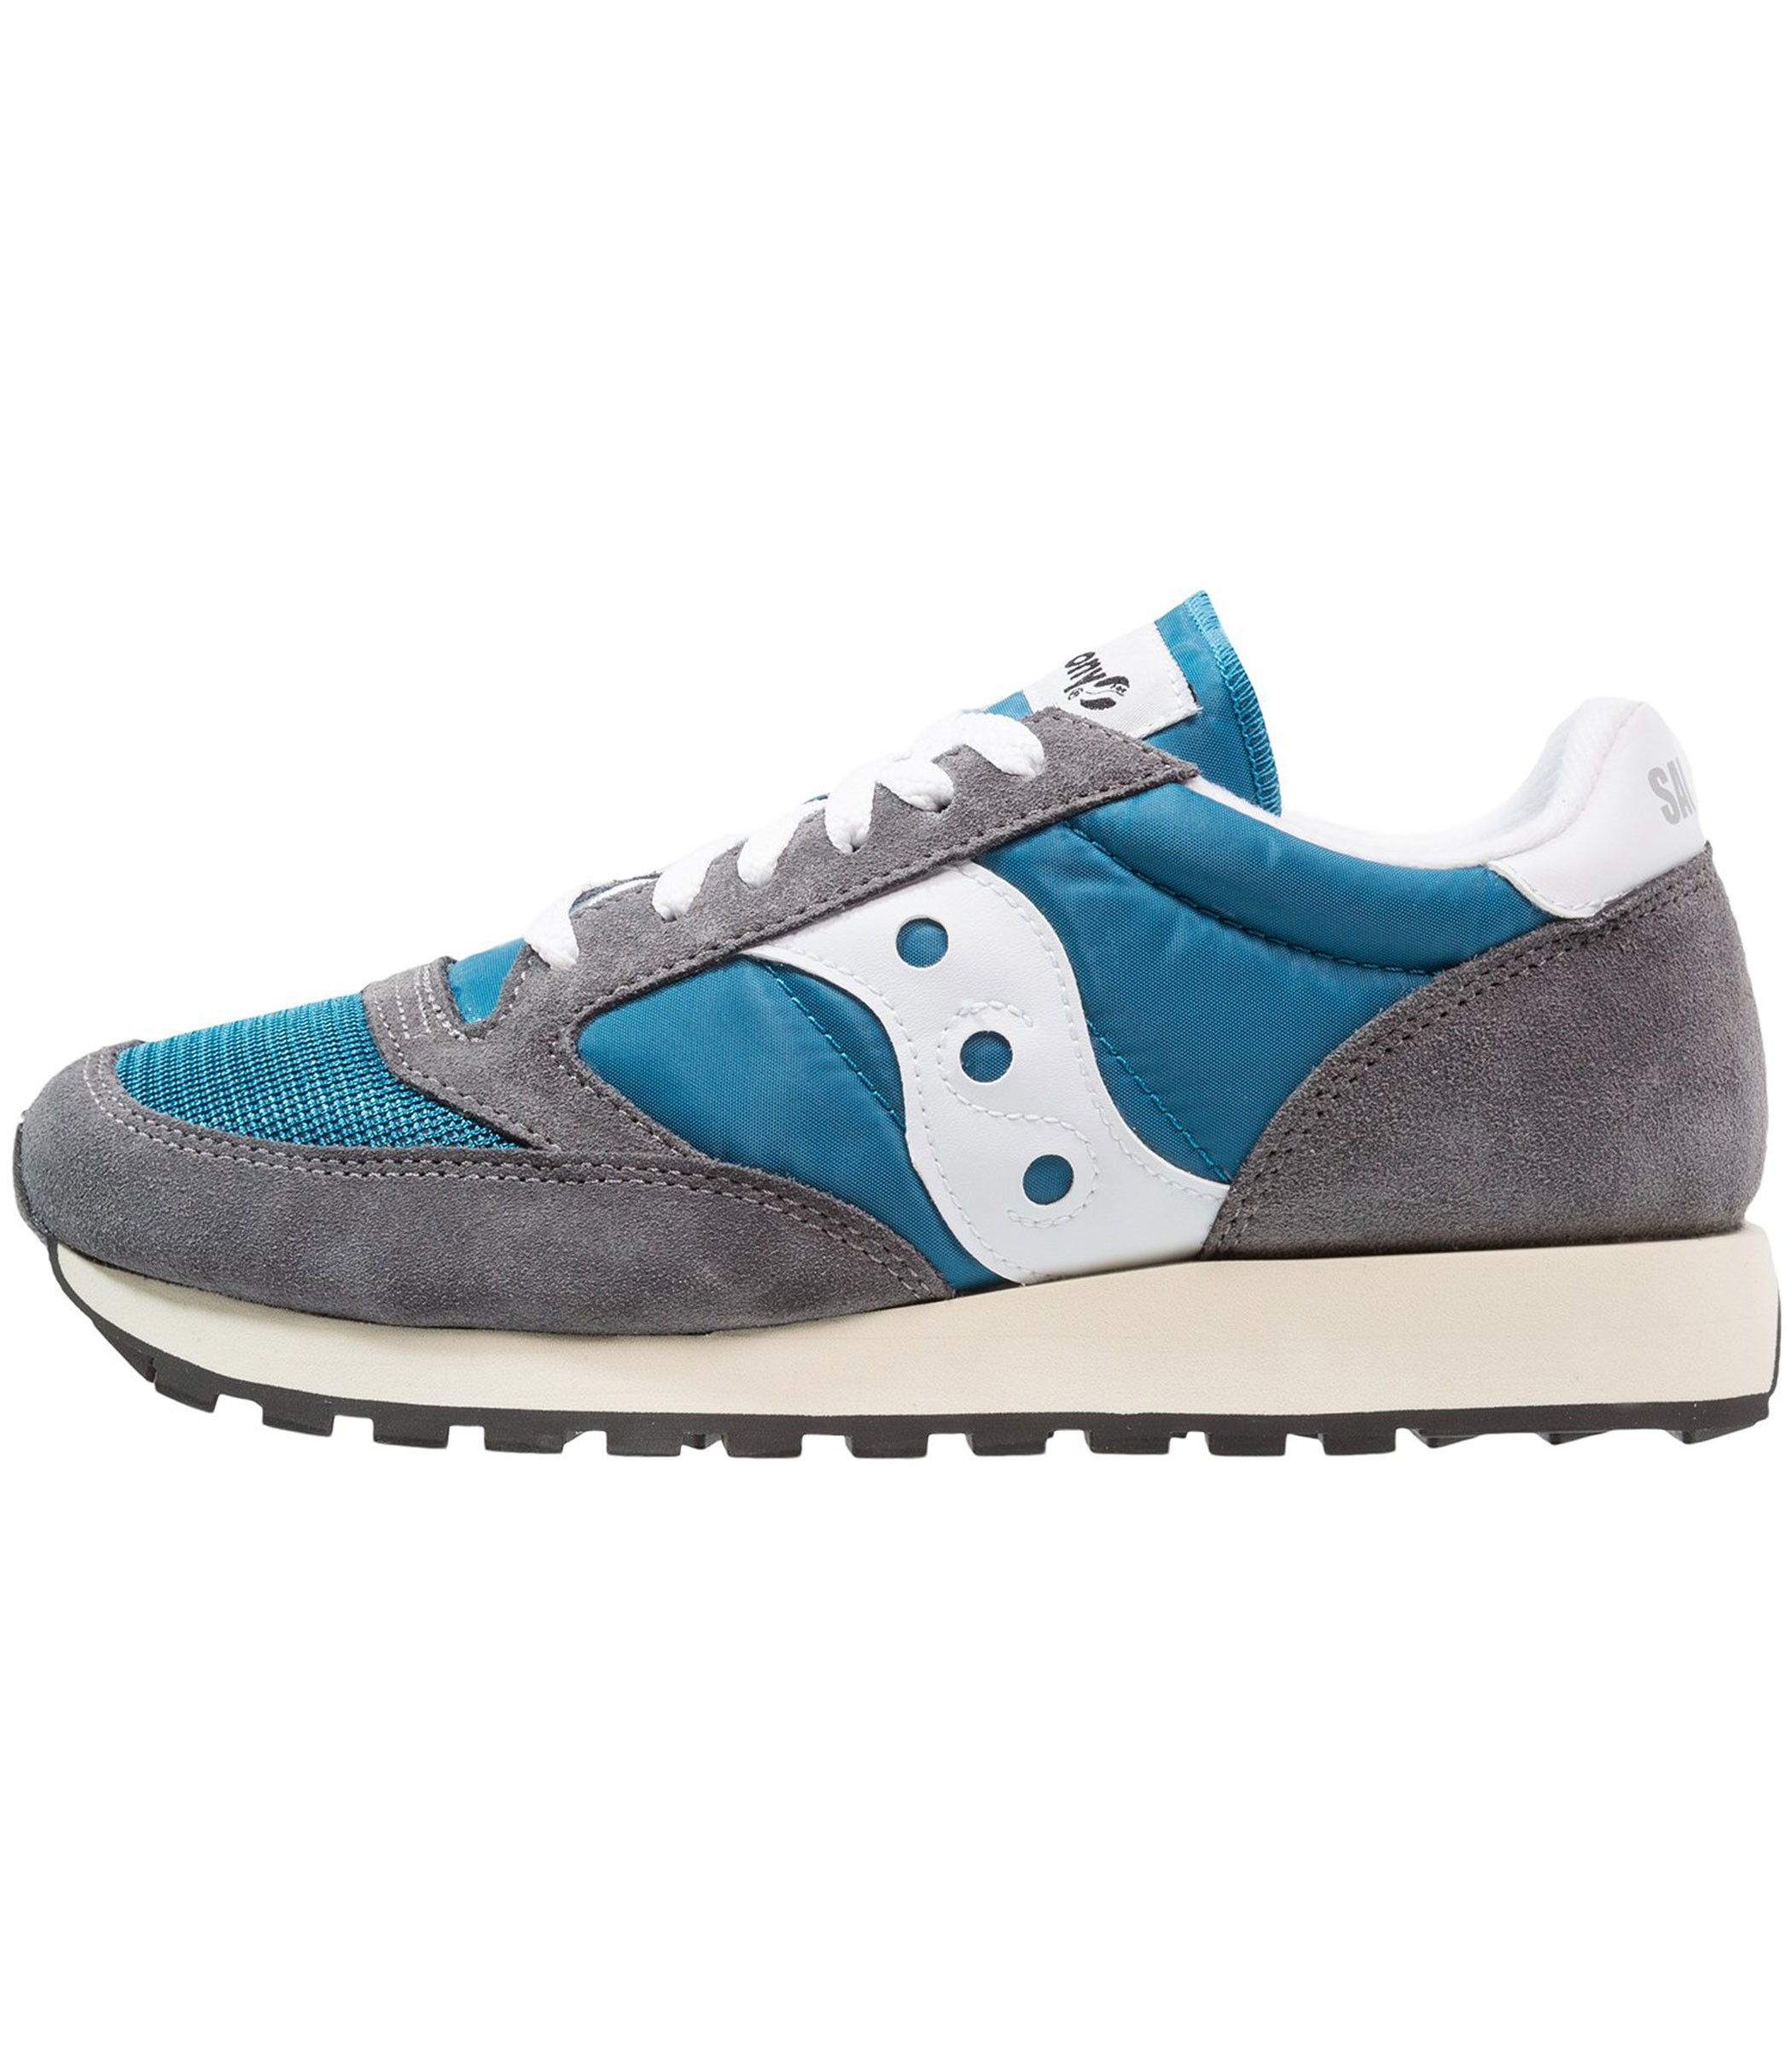 sports shoes 7a670 a5a0b Scarpe Saucony Jazz Original Vintage - Uomo S70368-20 www.montorostore.it  ...